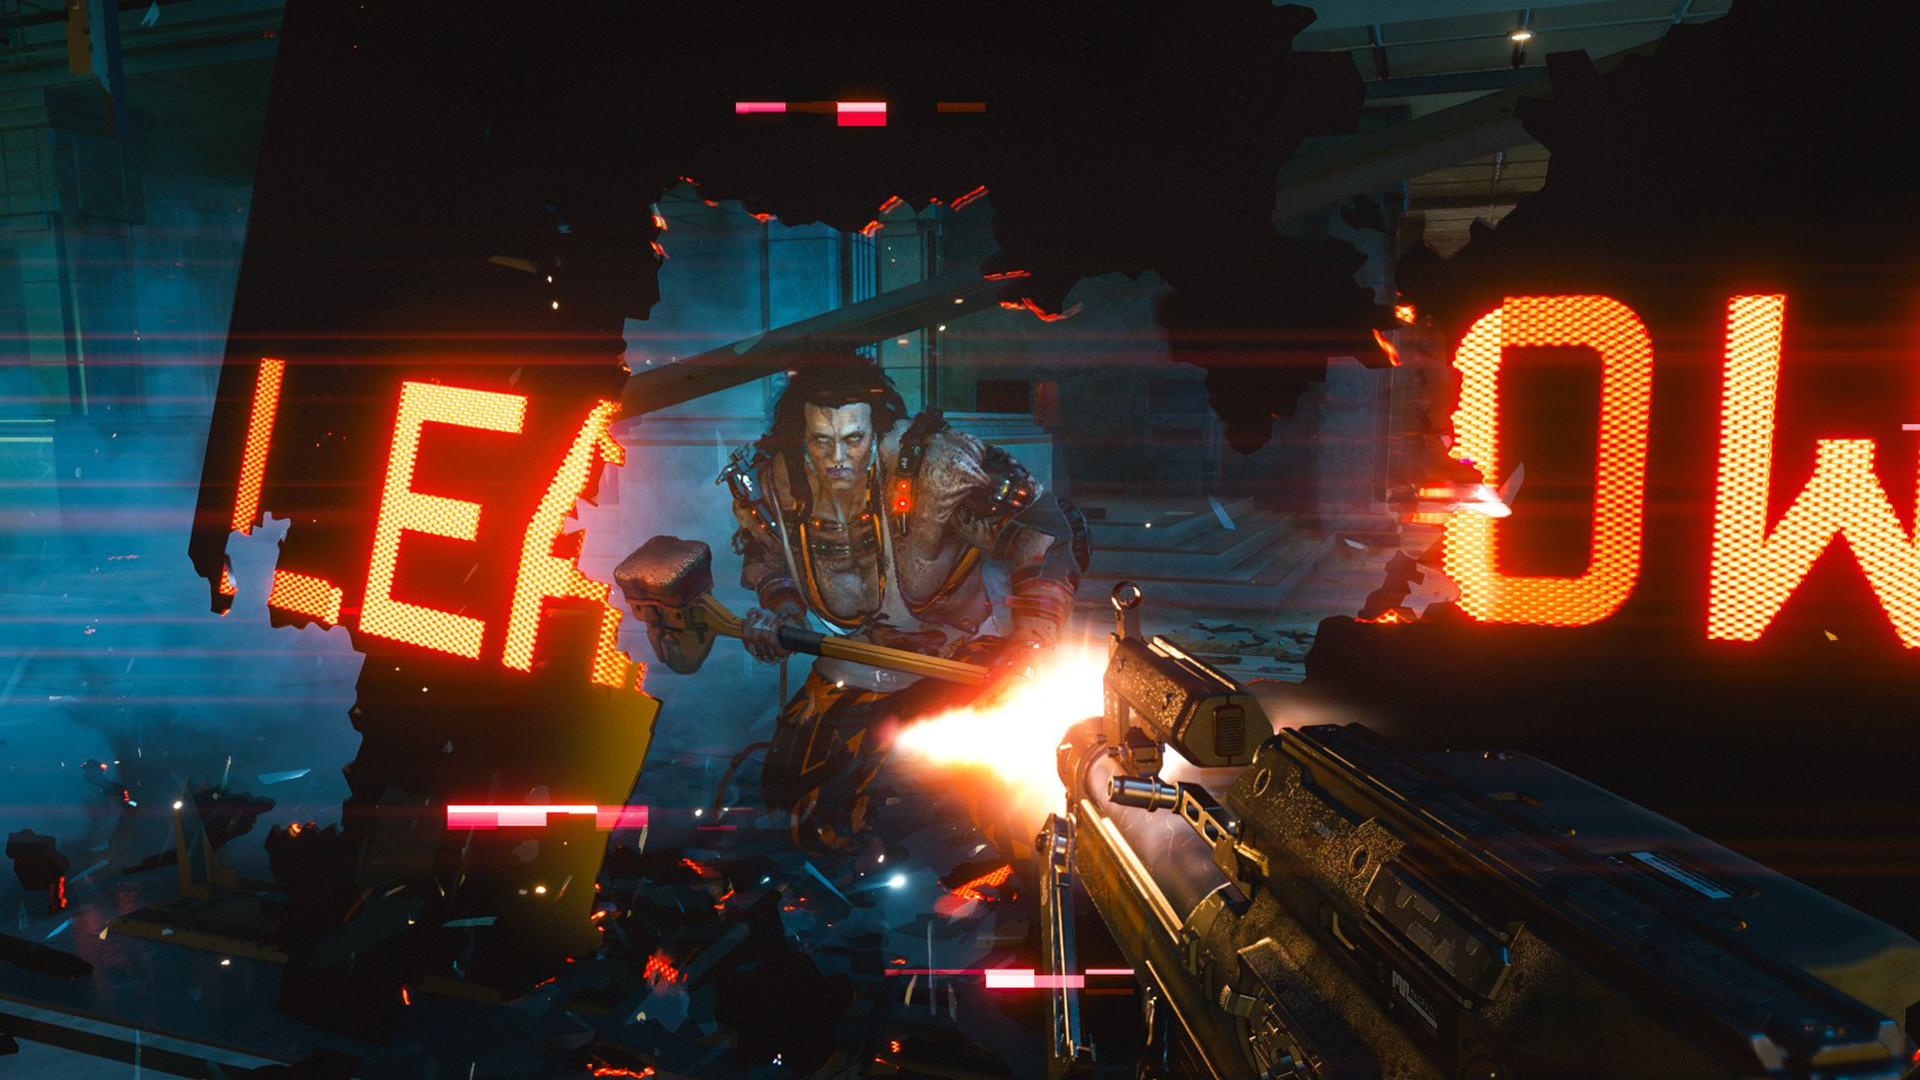 AMD graphics cards ready up for ray tracing in Cyberpunk 2077